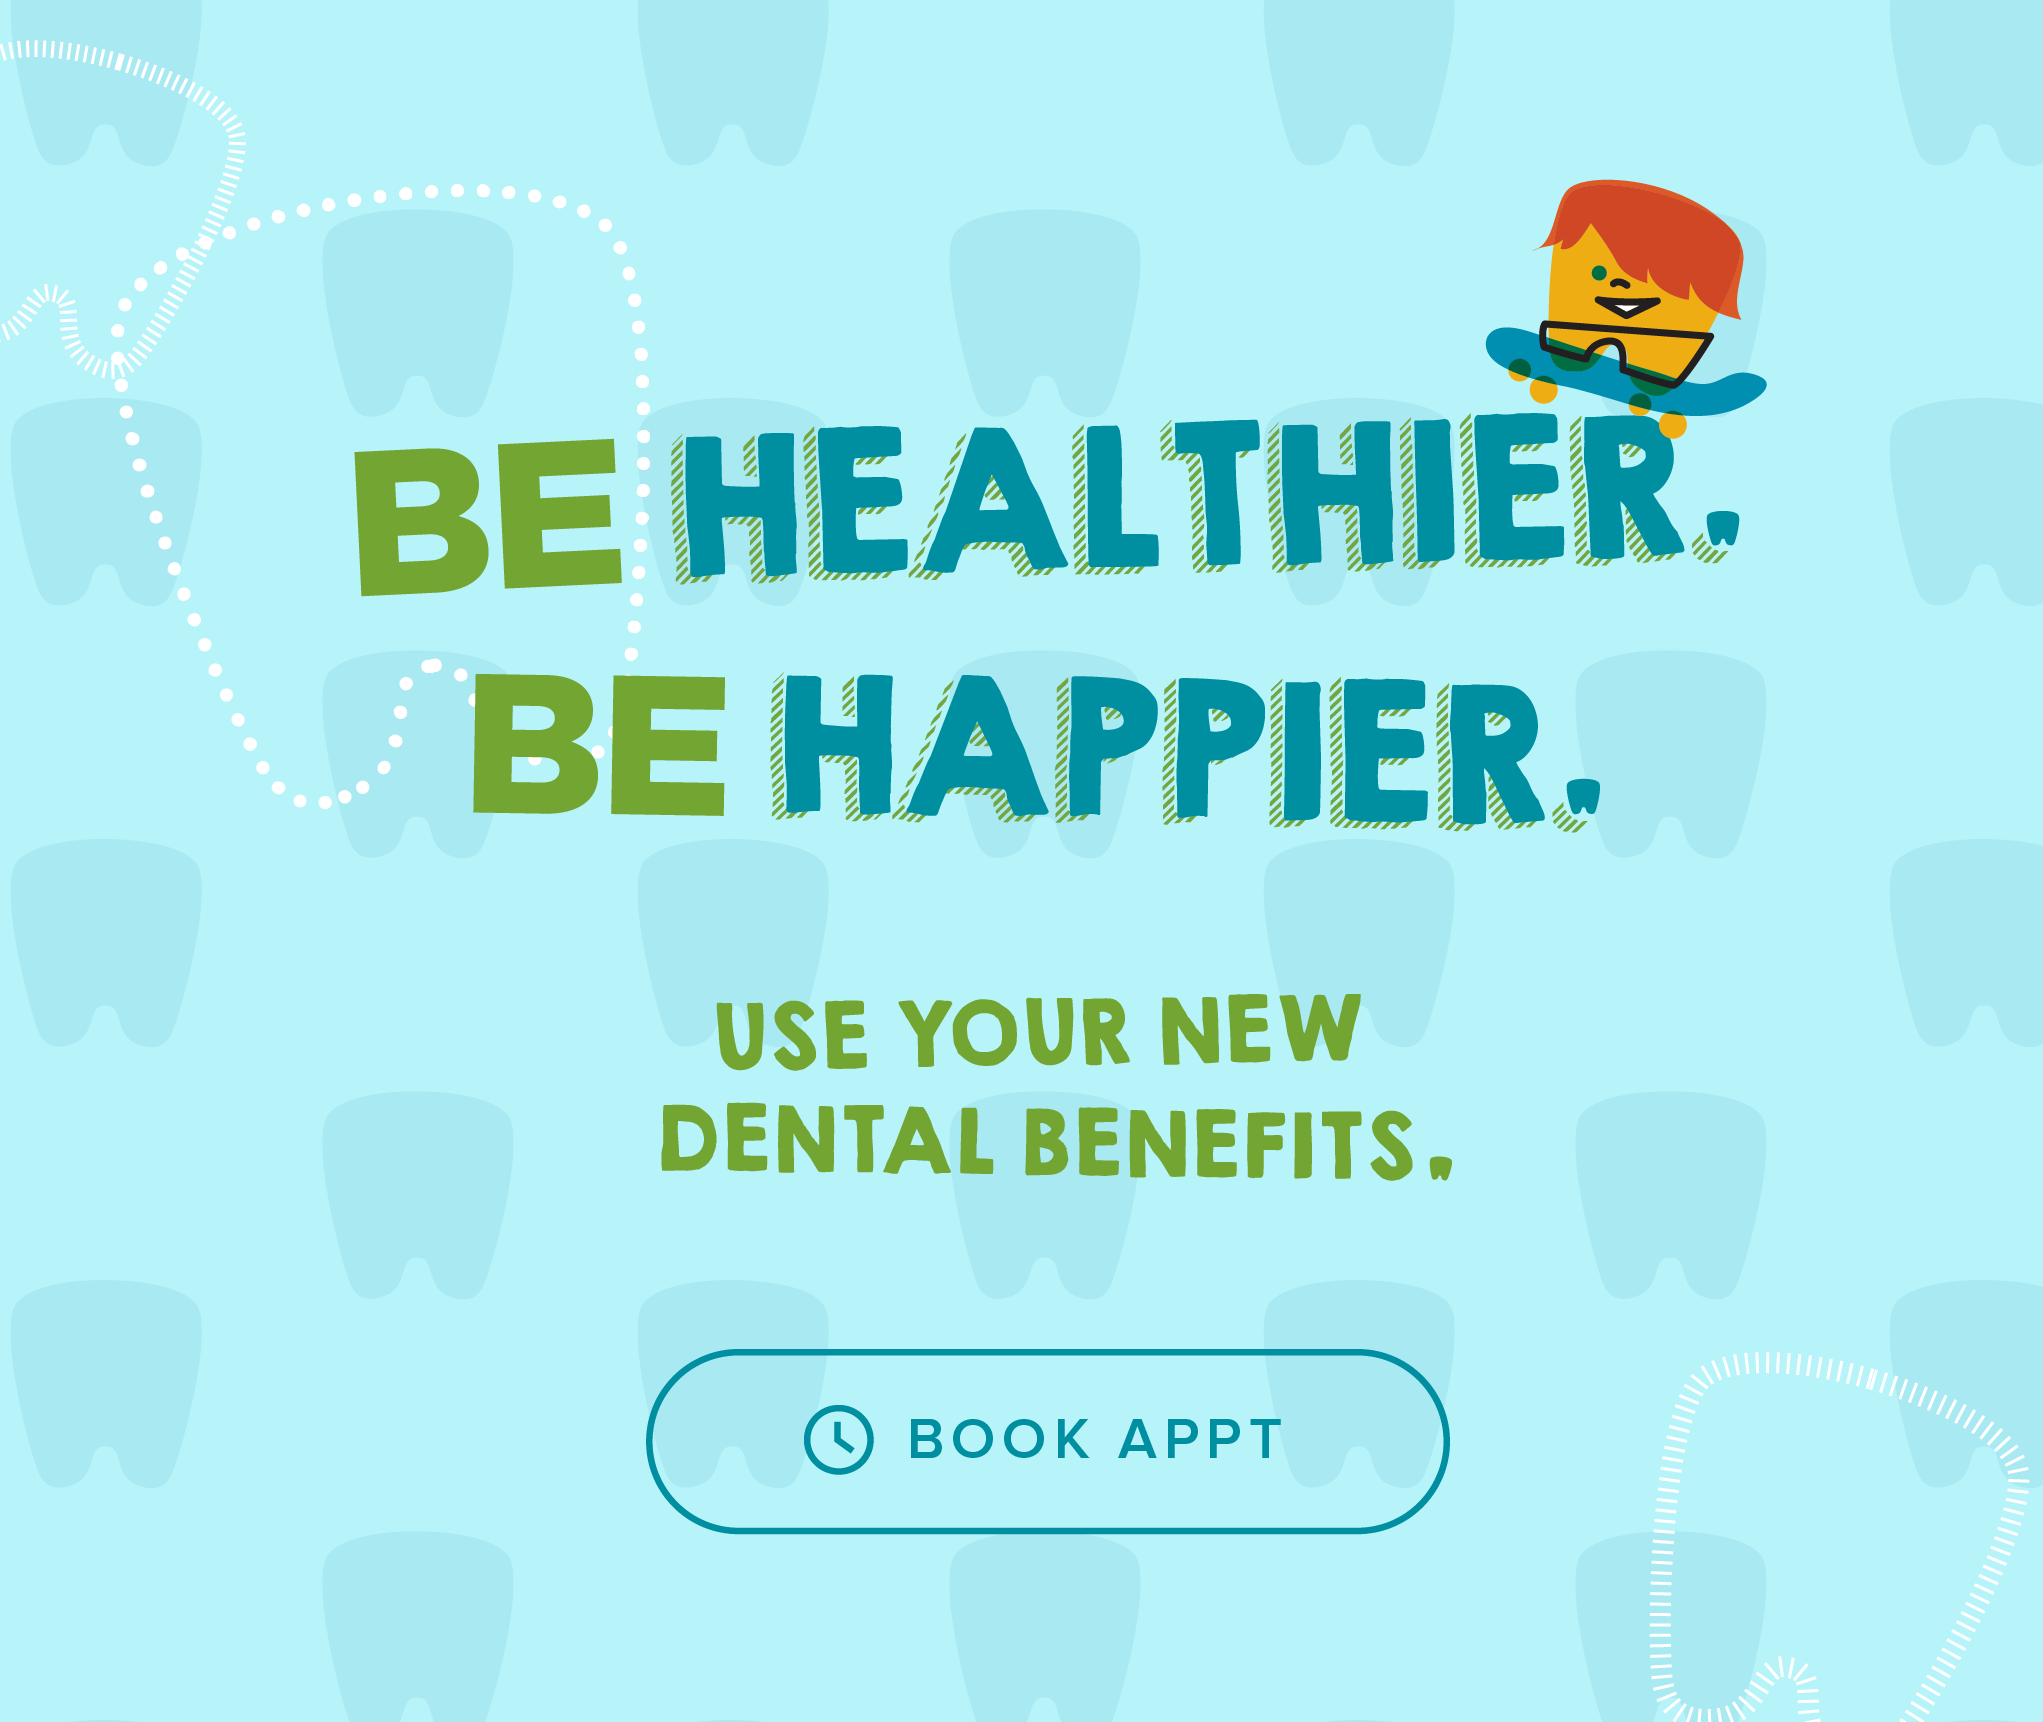 Be Healthier. Be Happier. Use your new dental benefits. - My Kid's Dentist and Orthodontics